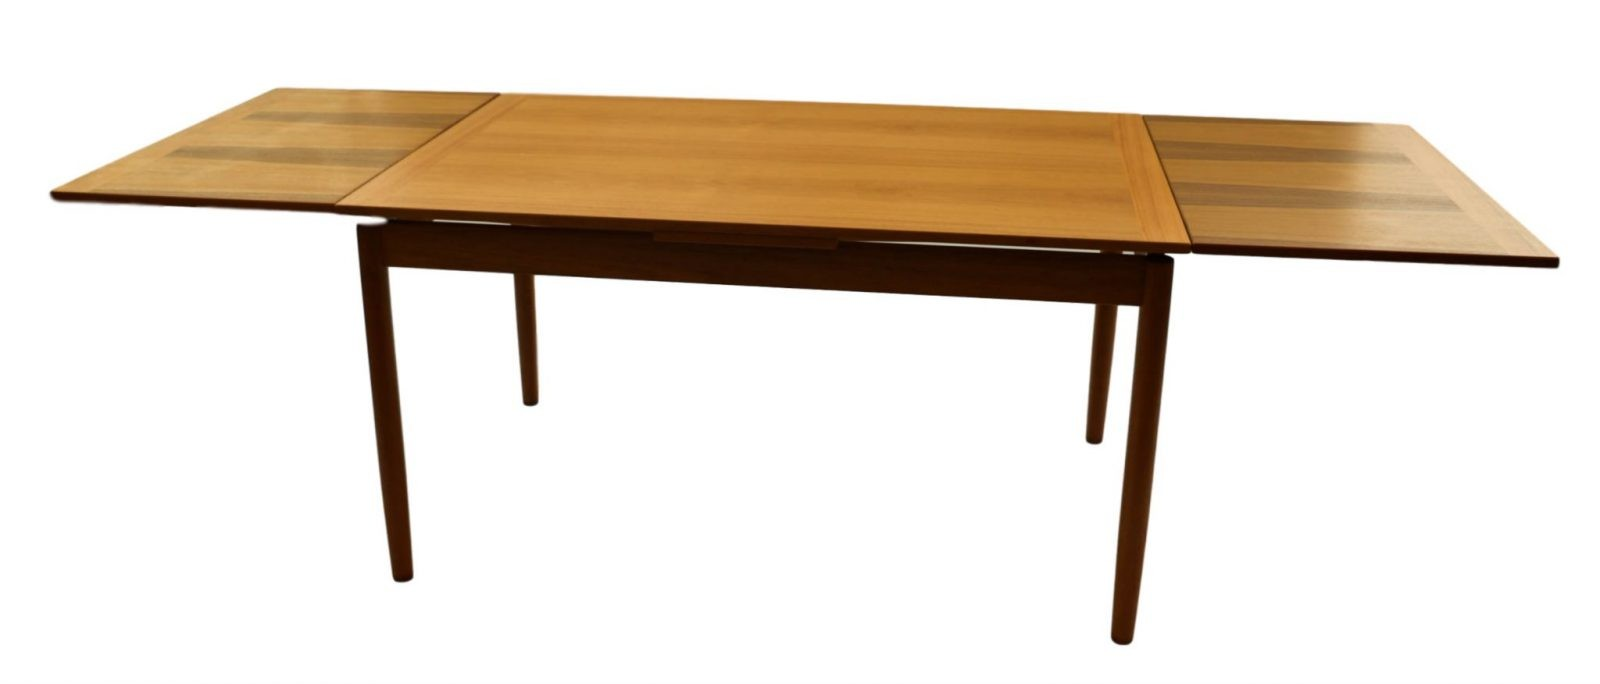 danish mid century modern teak extendable dining table. Black Bedroom Furniture Sets. Home Design Ideas